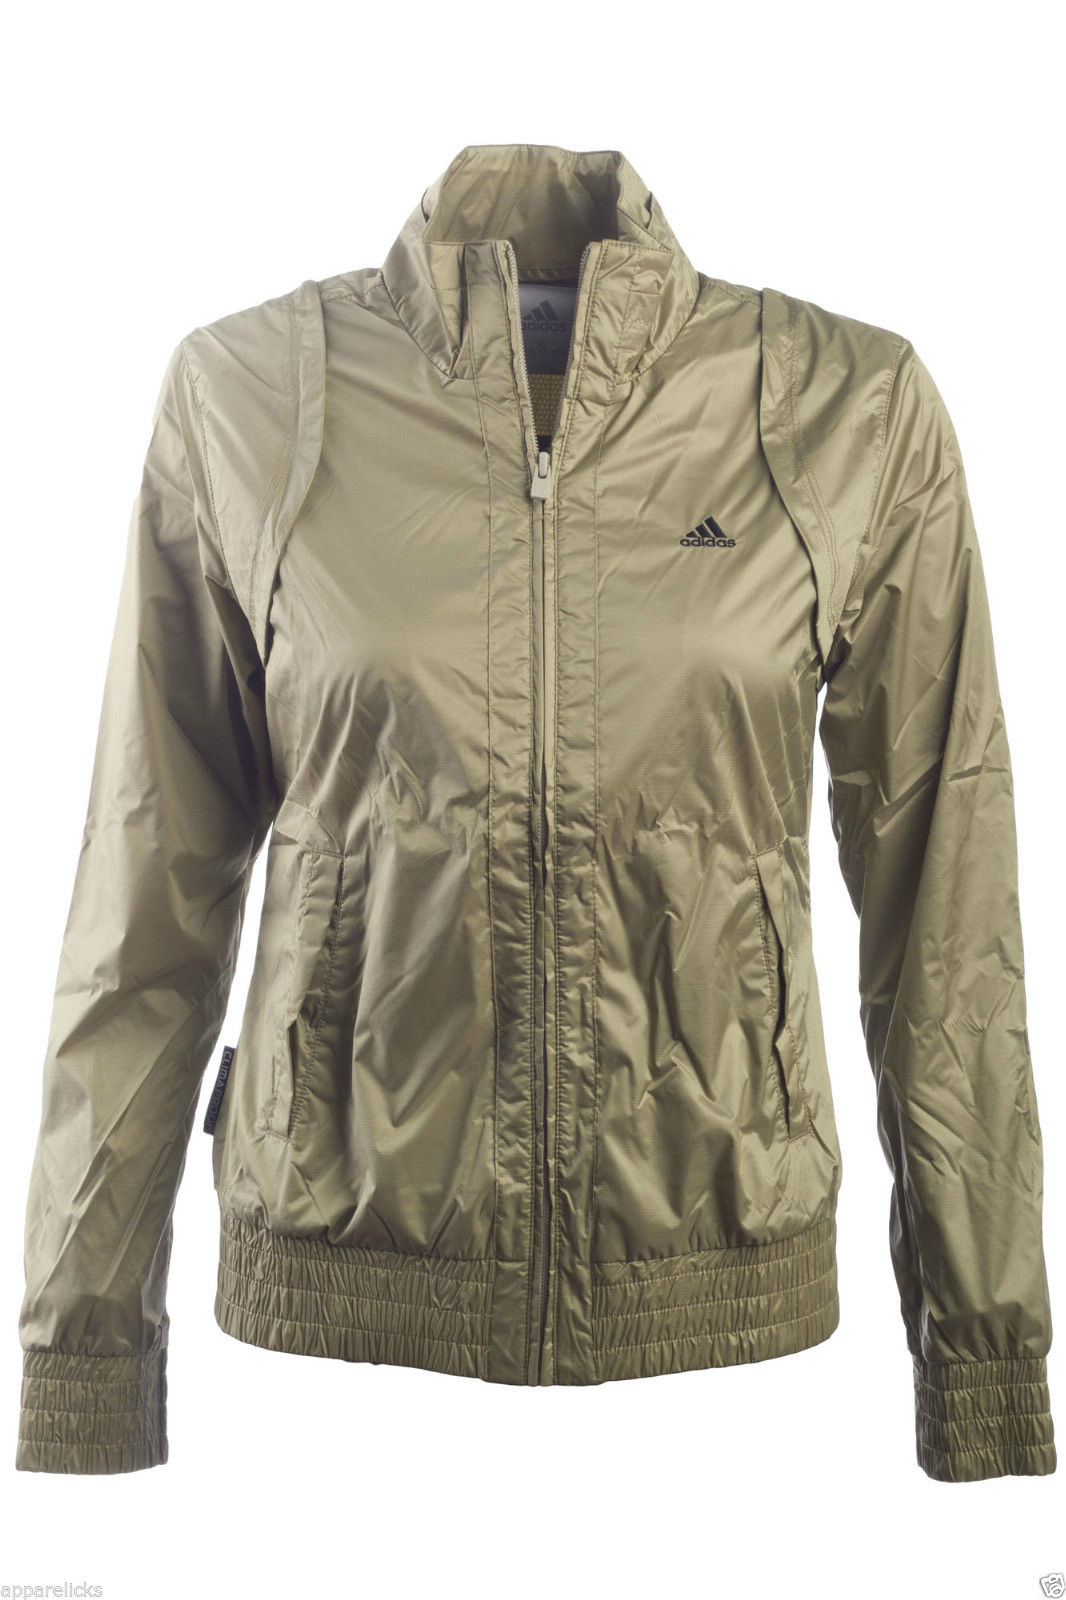 Details about Adidas Women's ClimaProof Women's Woven Jacket Champagne Lightweight